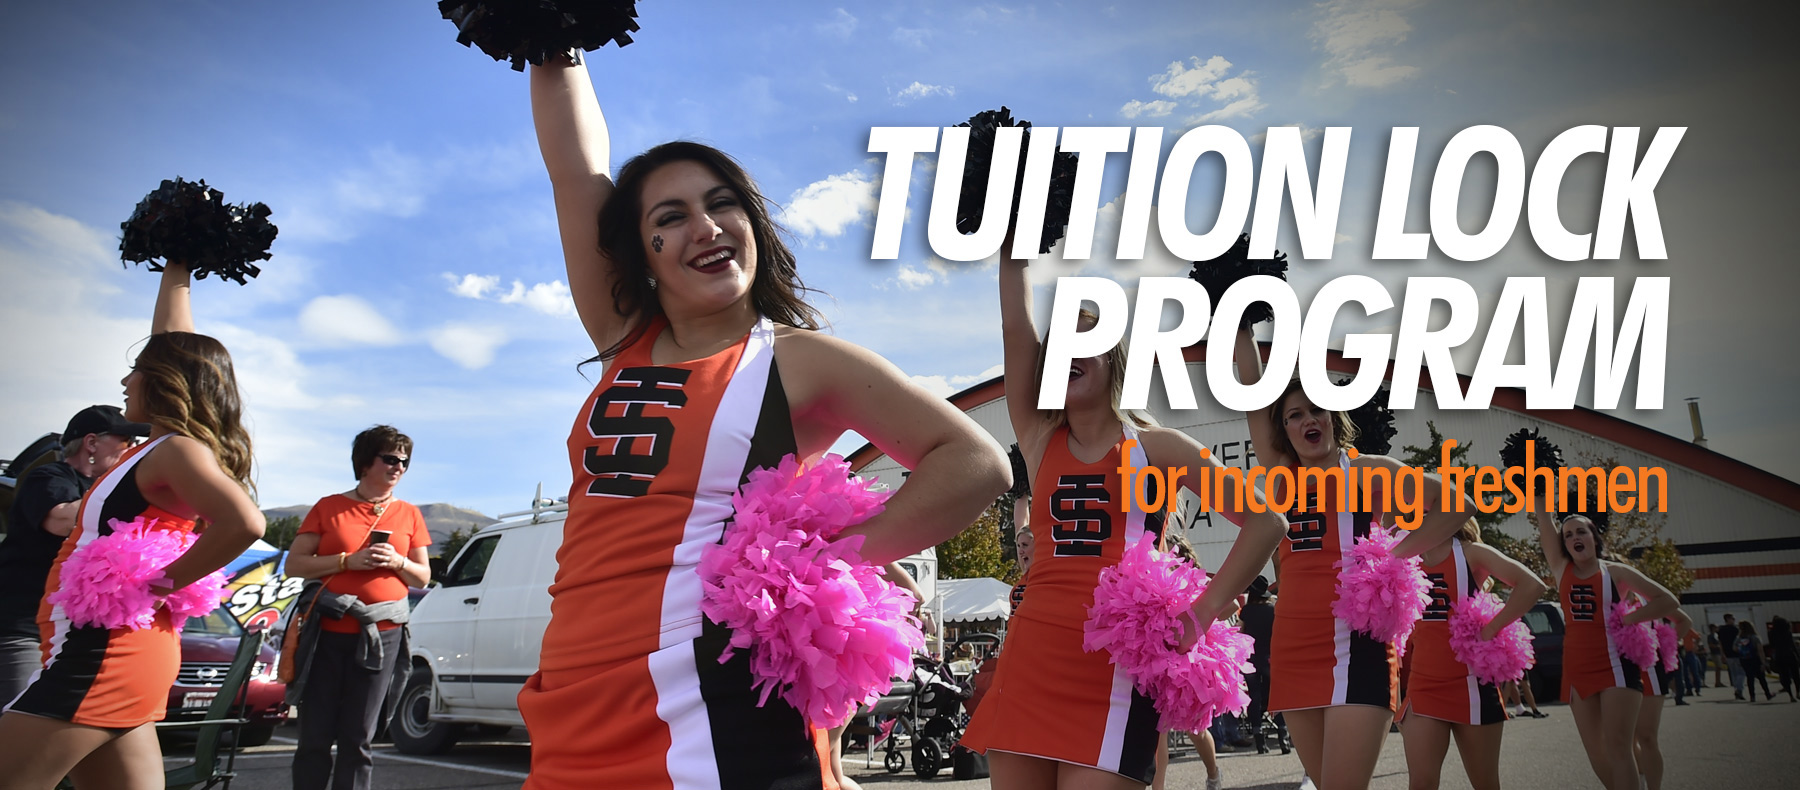 Tuition lock program for incoming freshman